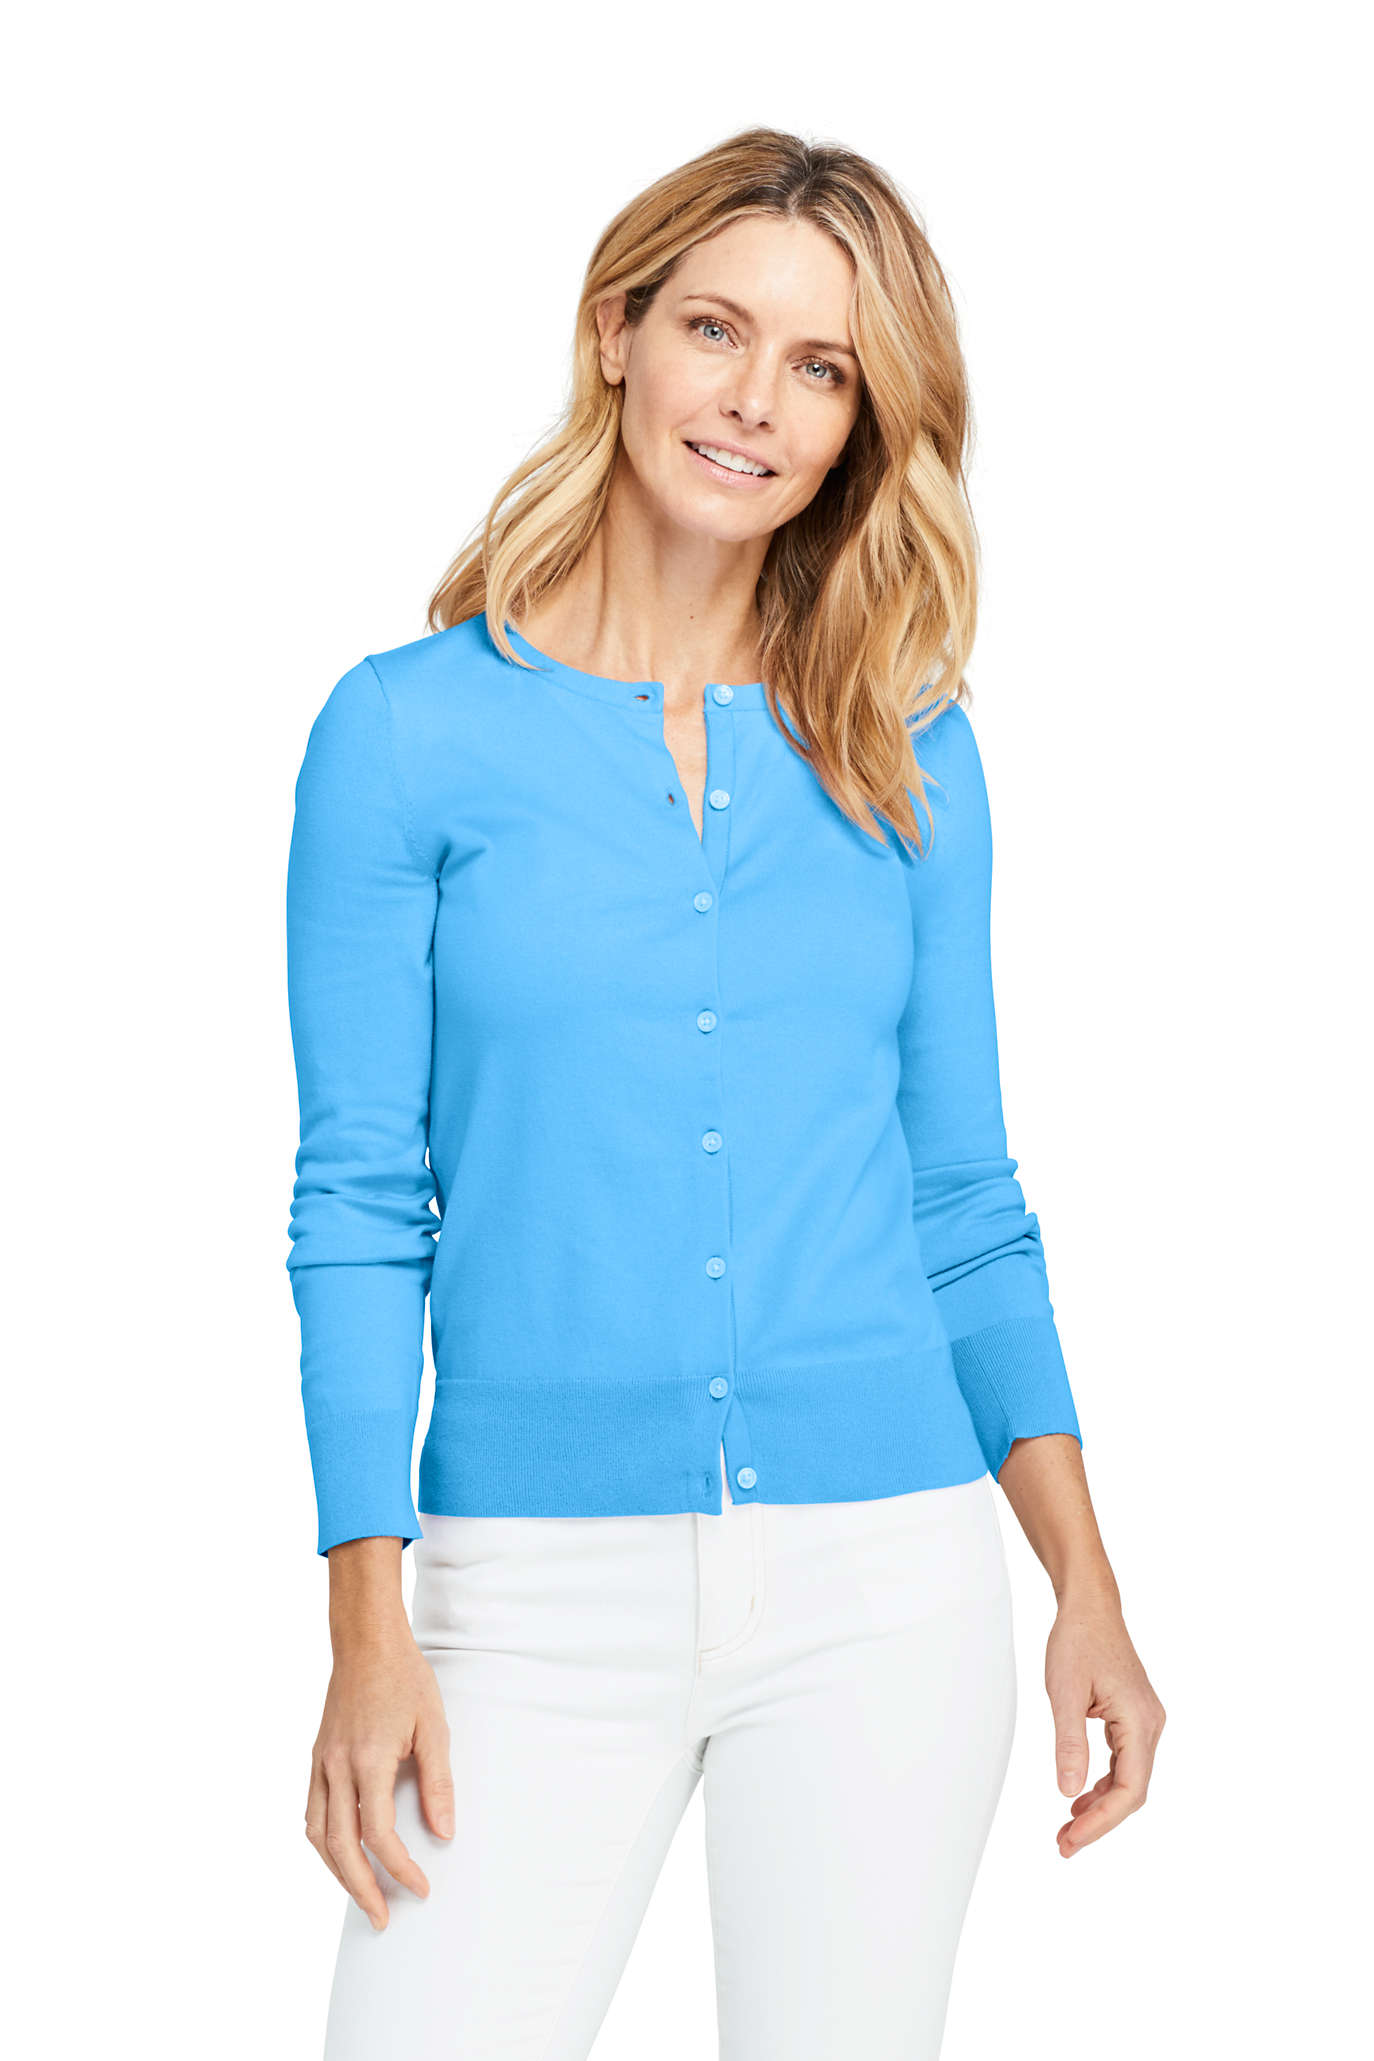 Women's Cotton Drifter Shawl Cardigan Sweater - Jacquard